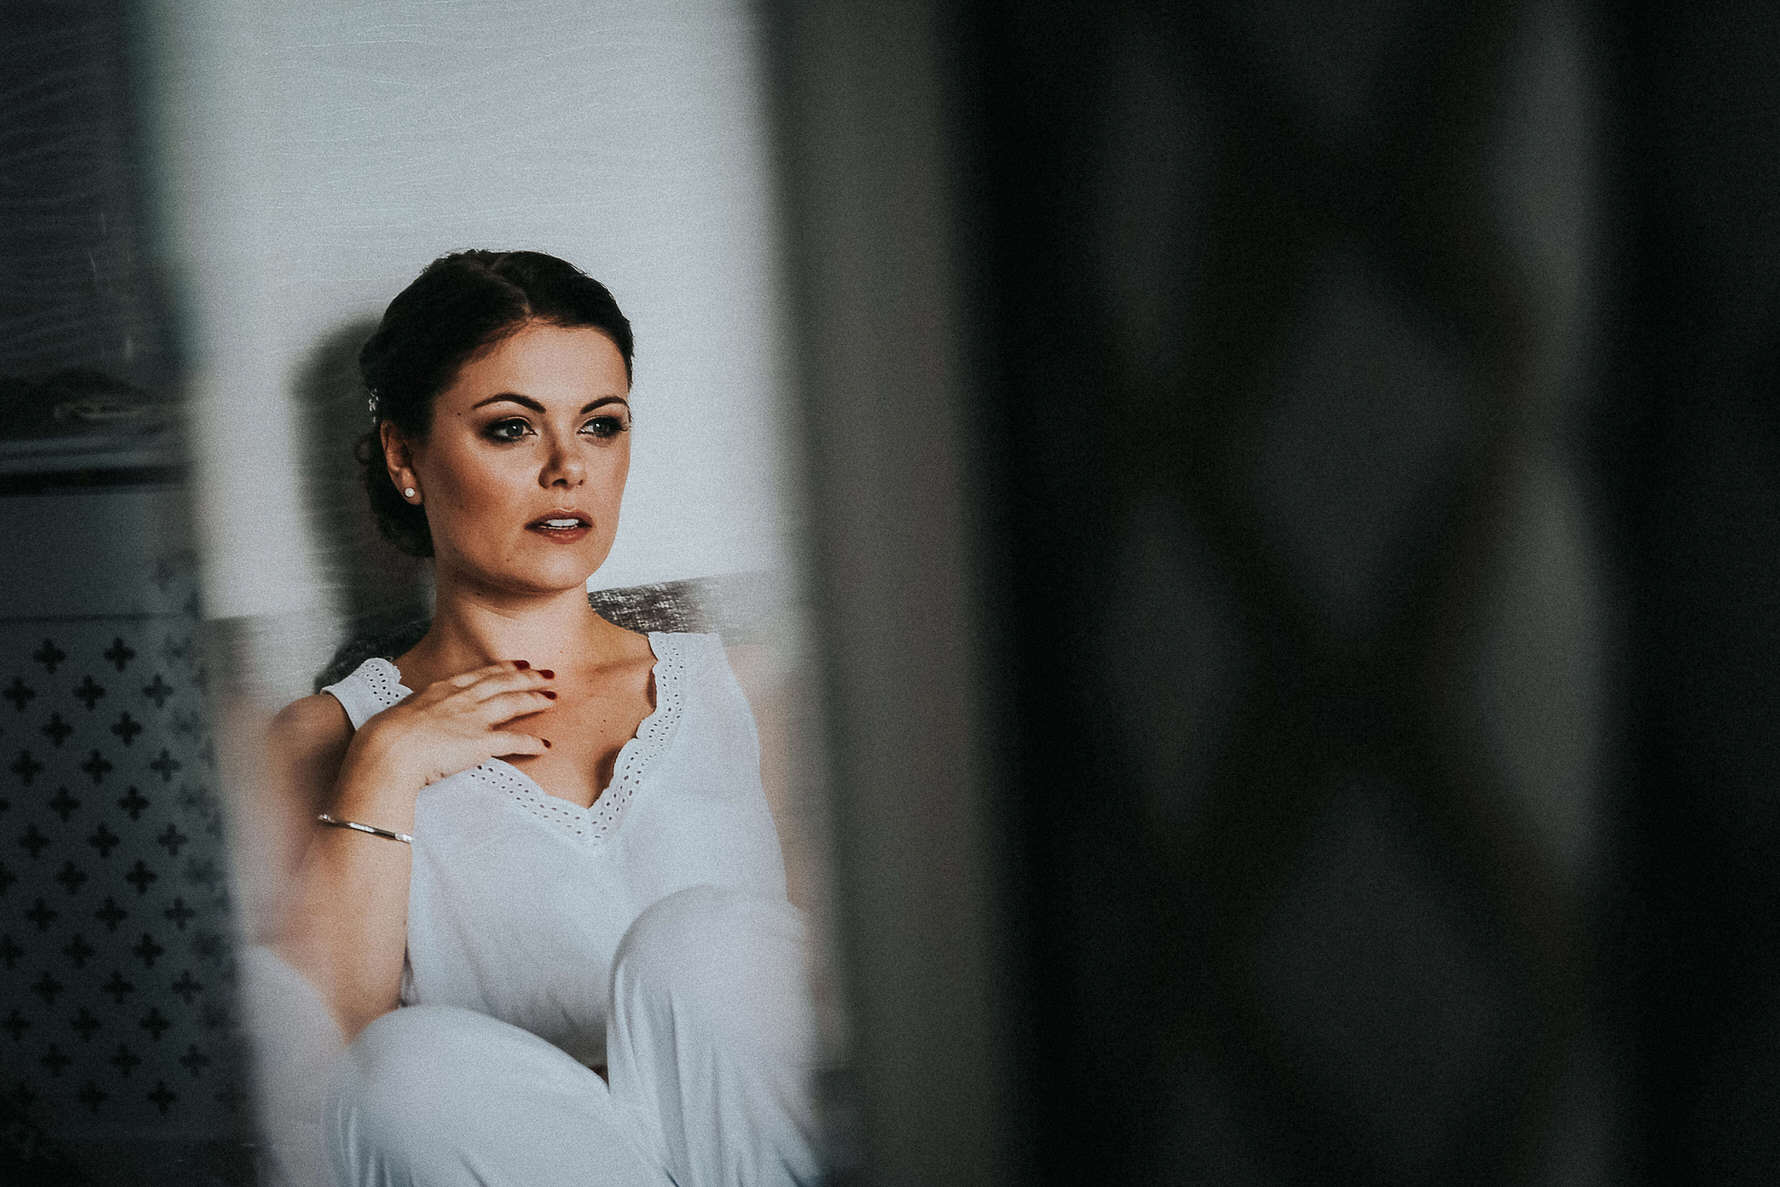 Wedding Photojournalism - A bride reflection in the mirror